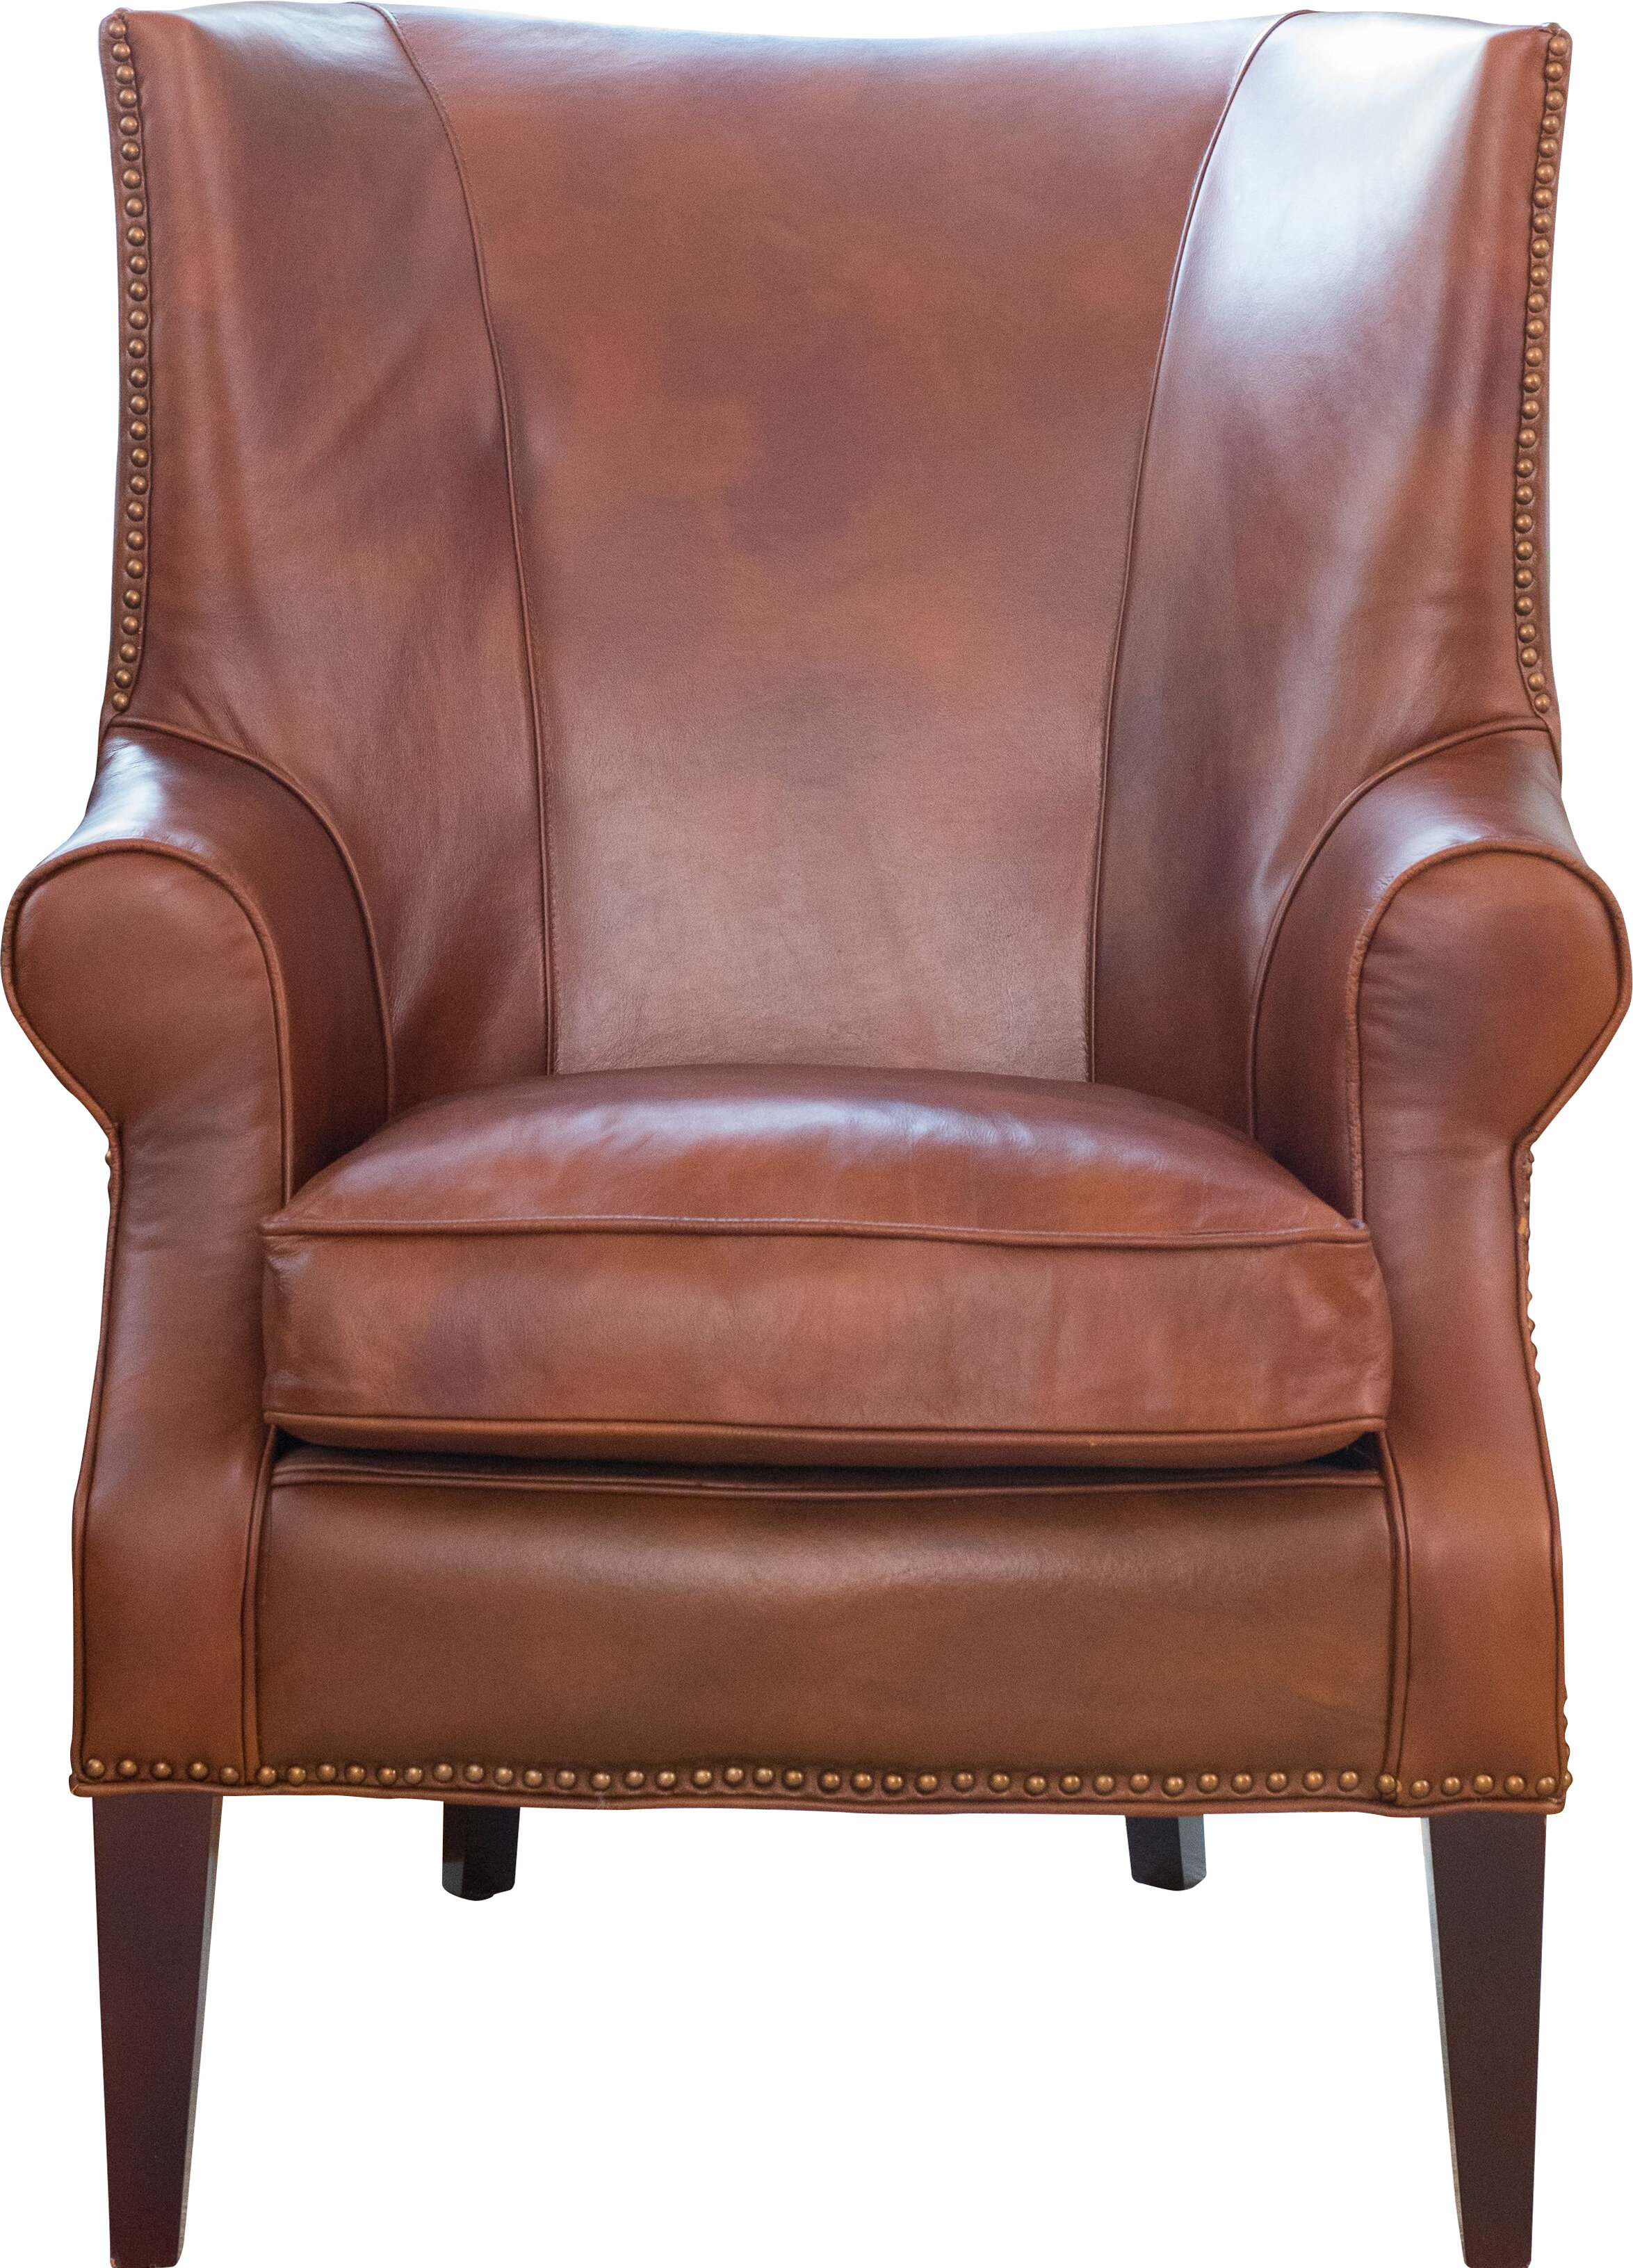 Ordinaire Elements Fine Home Furnishings Brayden Leather Wingback Chair | Wayfair